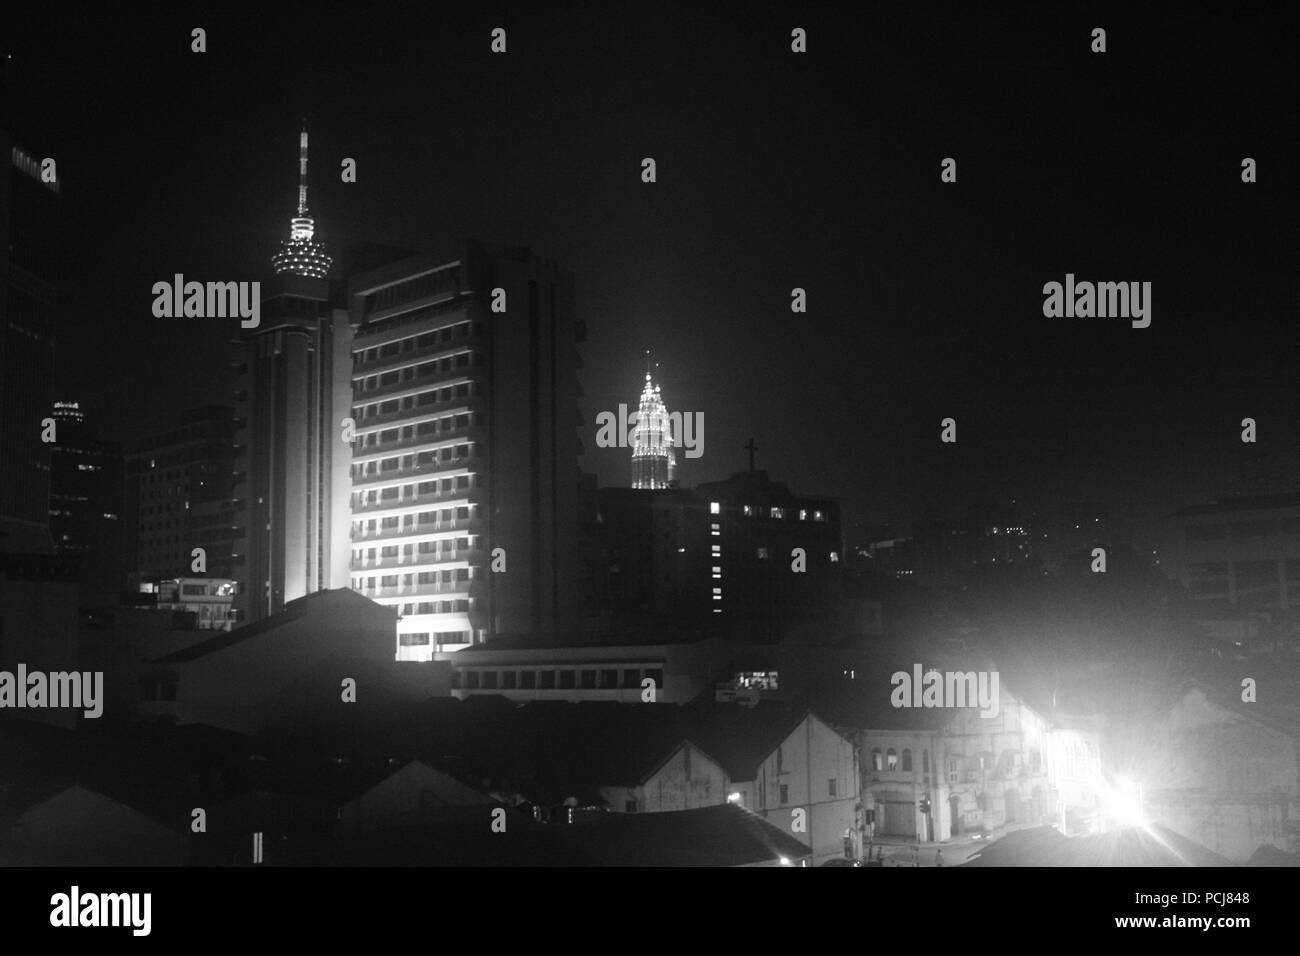 Kuala Lumpur at night from China Town in black and white - Stock Image